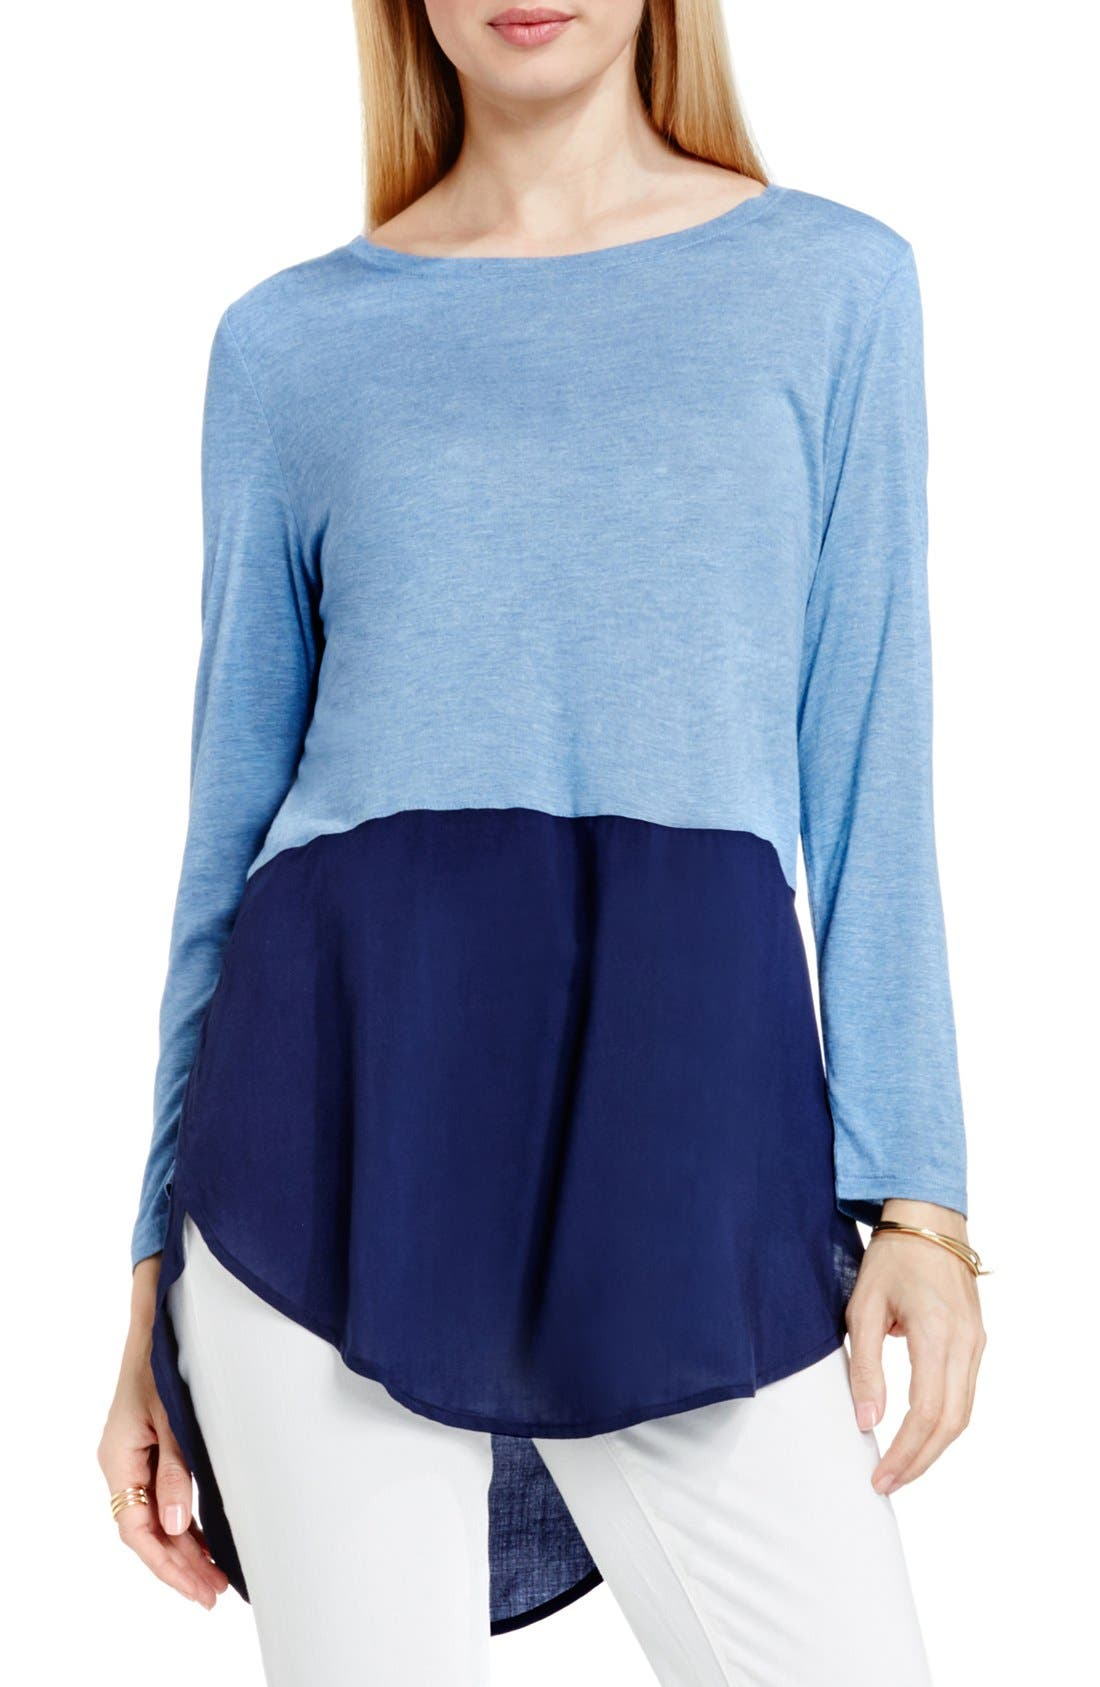 TWO BY VINCE CAMUTO Mixed Media Jewel Neck Tunic in Indigo Heather